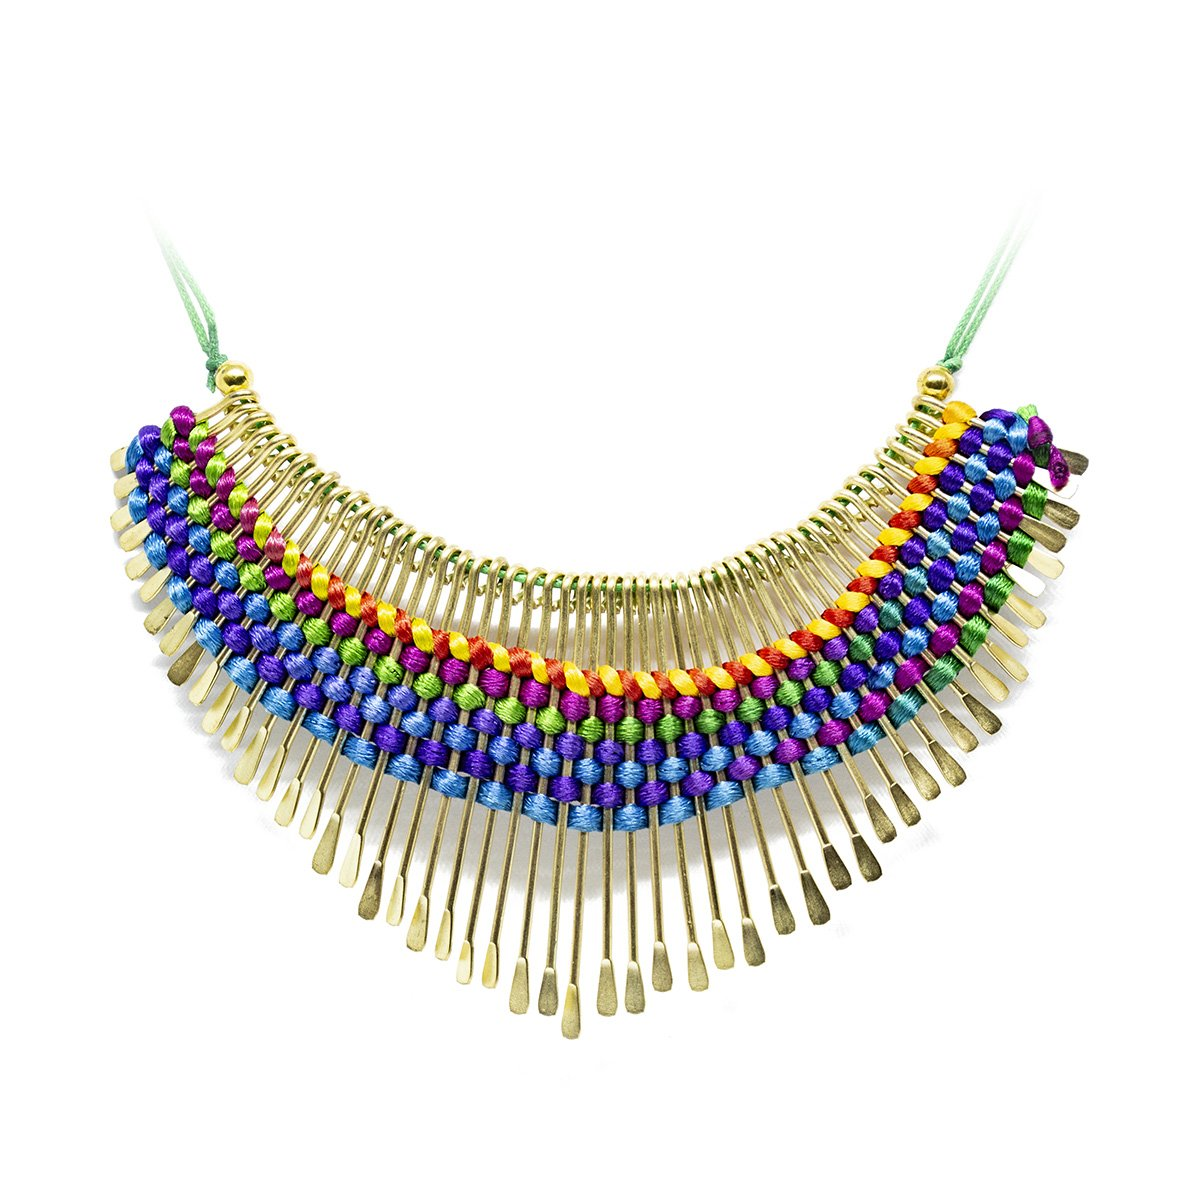 hand-braided colorful brass necklace from India - een stip